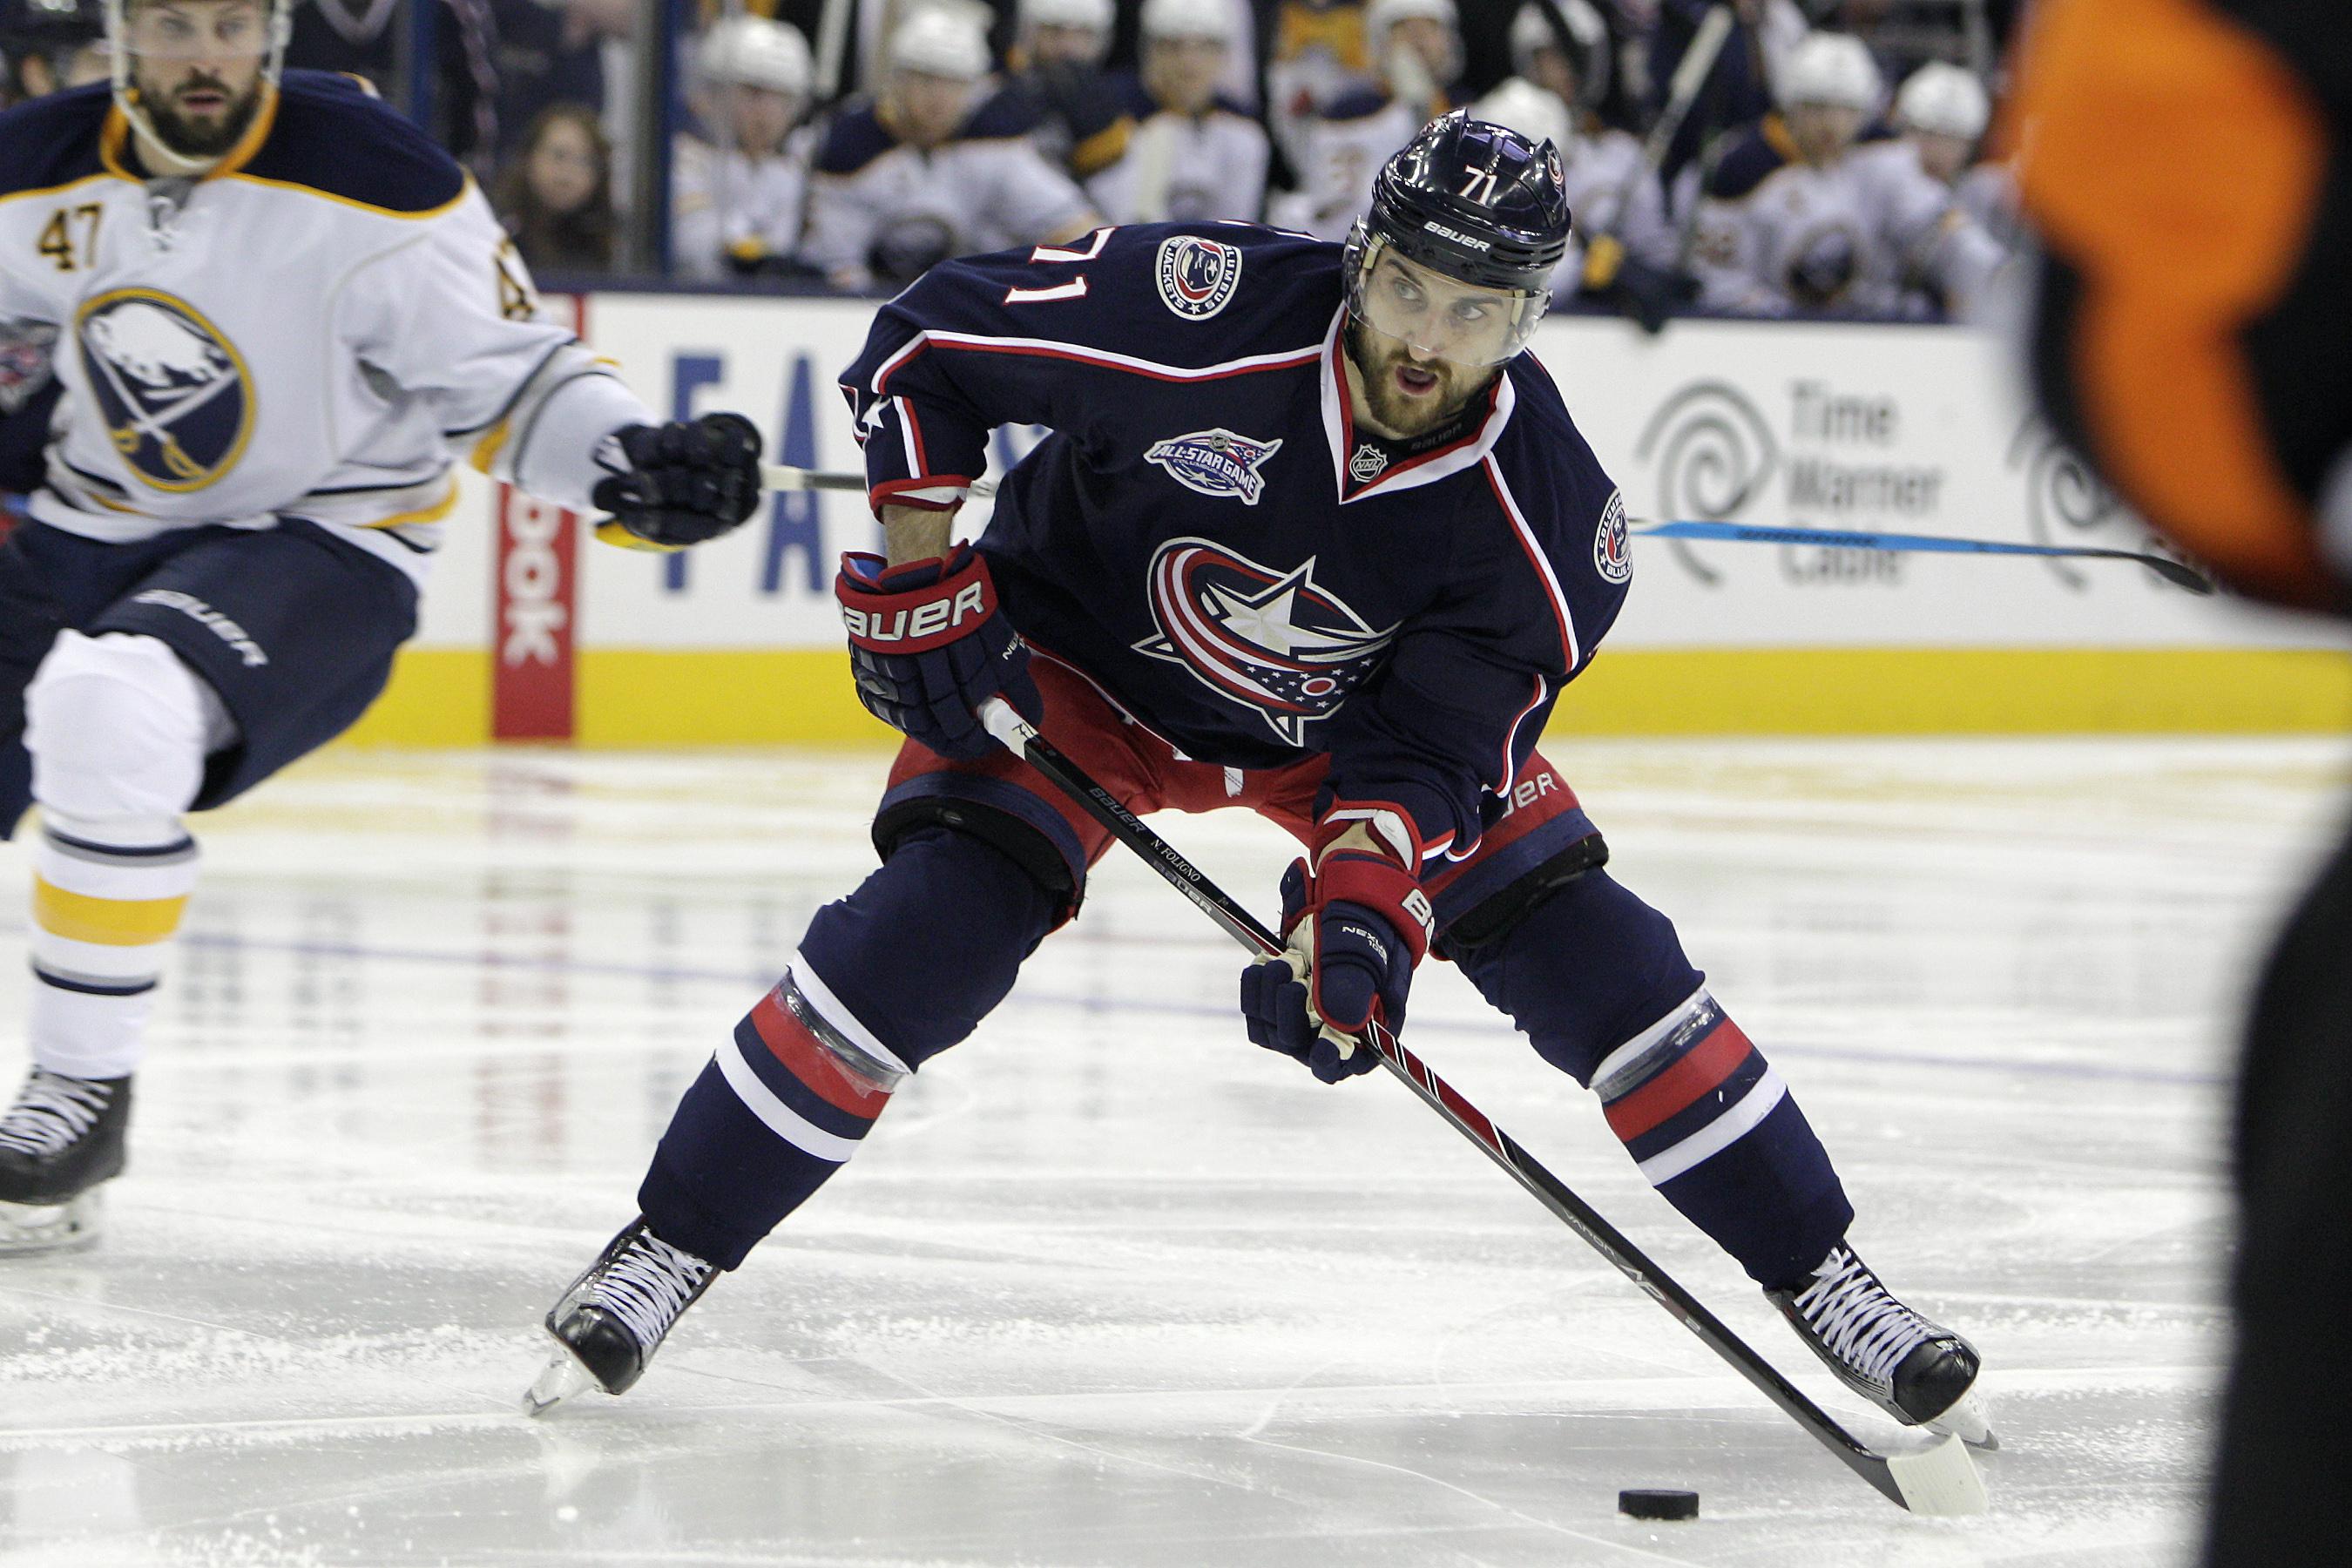 FILE-This Friday, April 10, 2015, file photo shows Columbus Blue Jackets' Nick Foligno playing against the Buffalo Sabres during an NHL hockey game in Columbus, Ohio. Without a captain for three years since Rick Nash was traded away, the Columbus Blue Jac